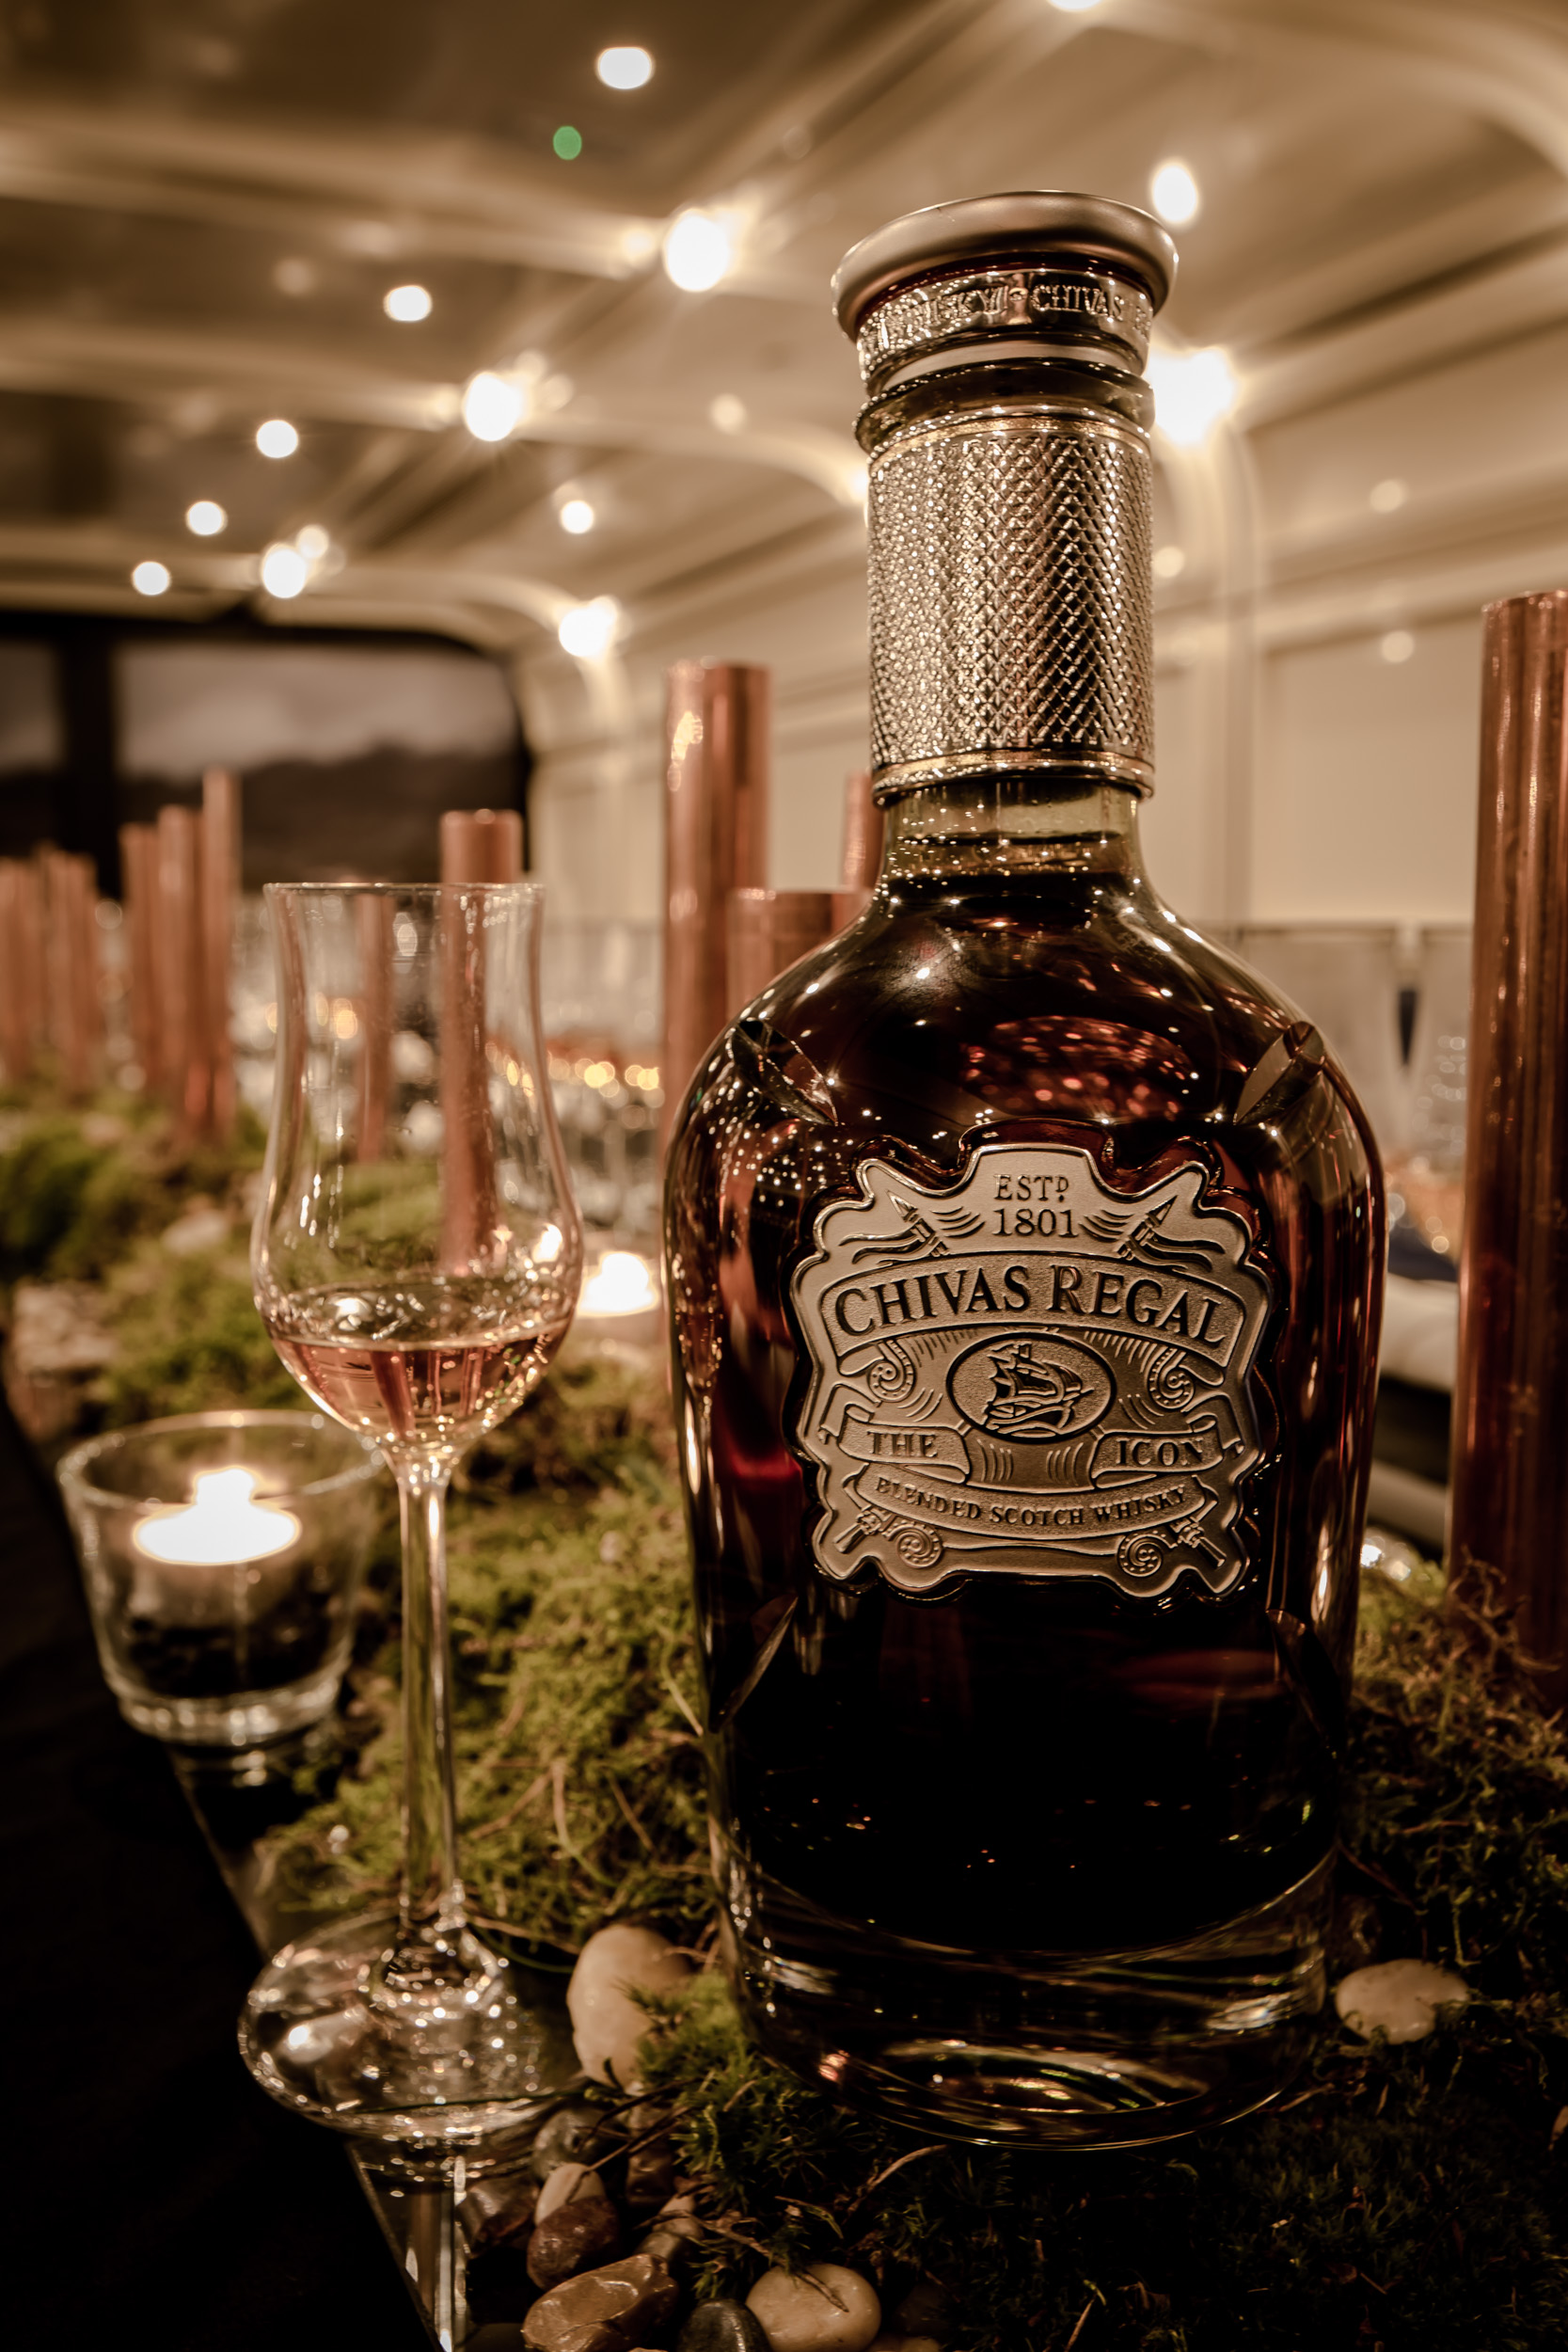 Chivas Regal via Chivas